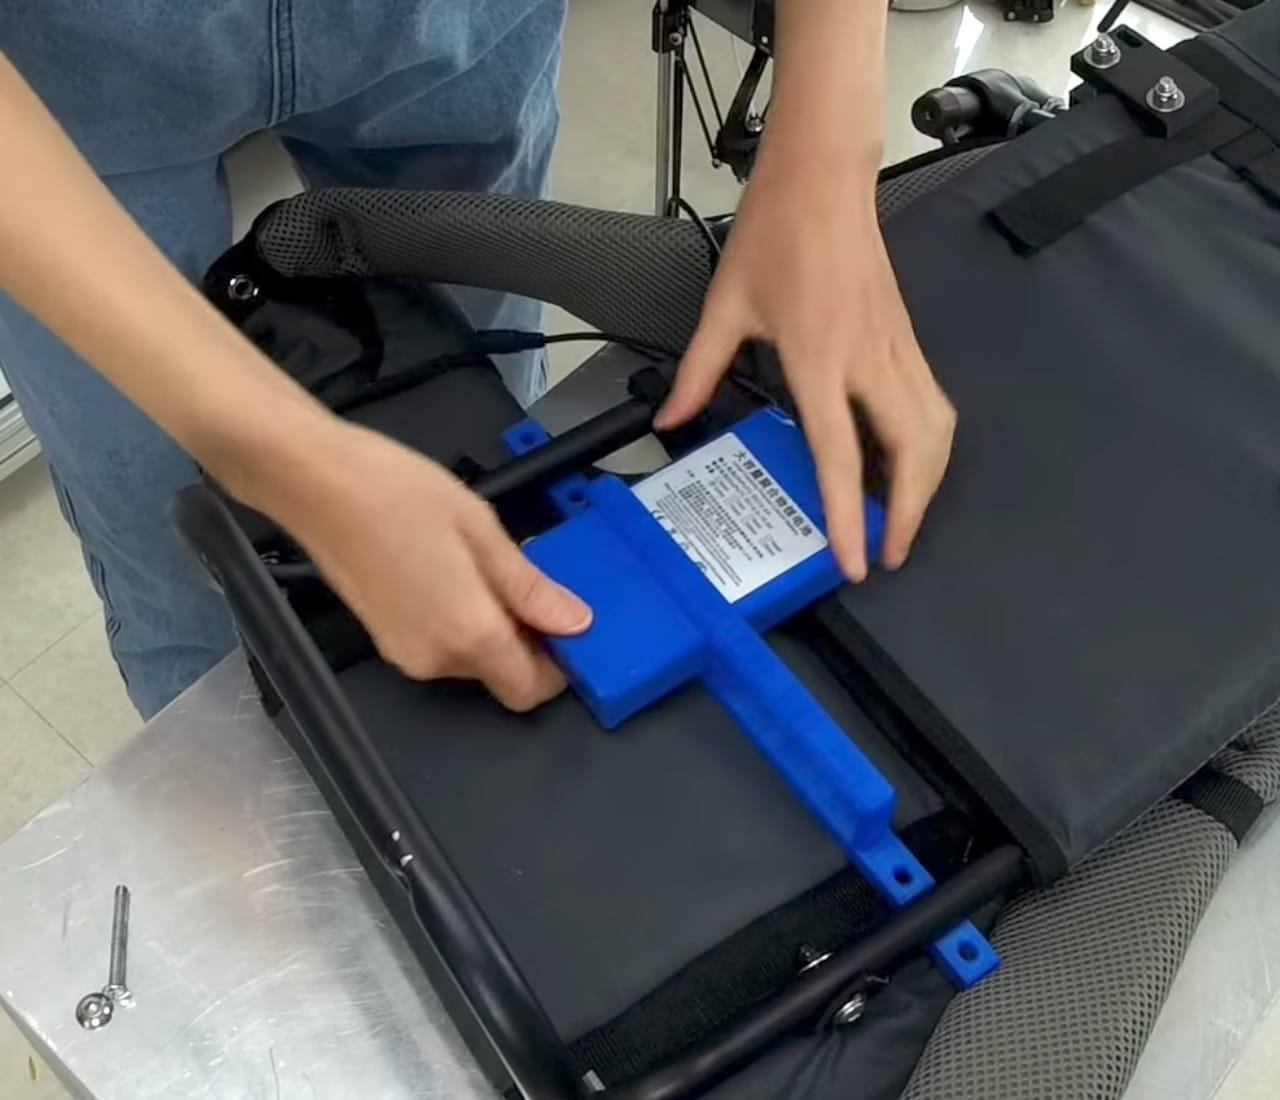 Mounting the batteries in the wearable 3D printer harness